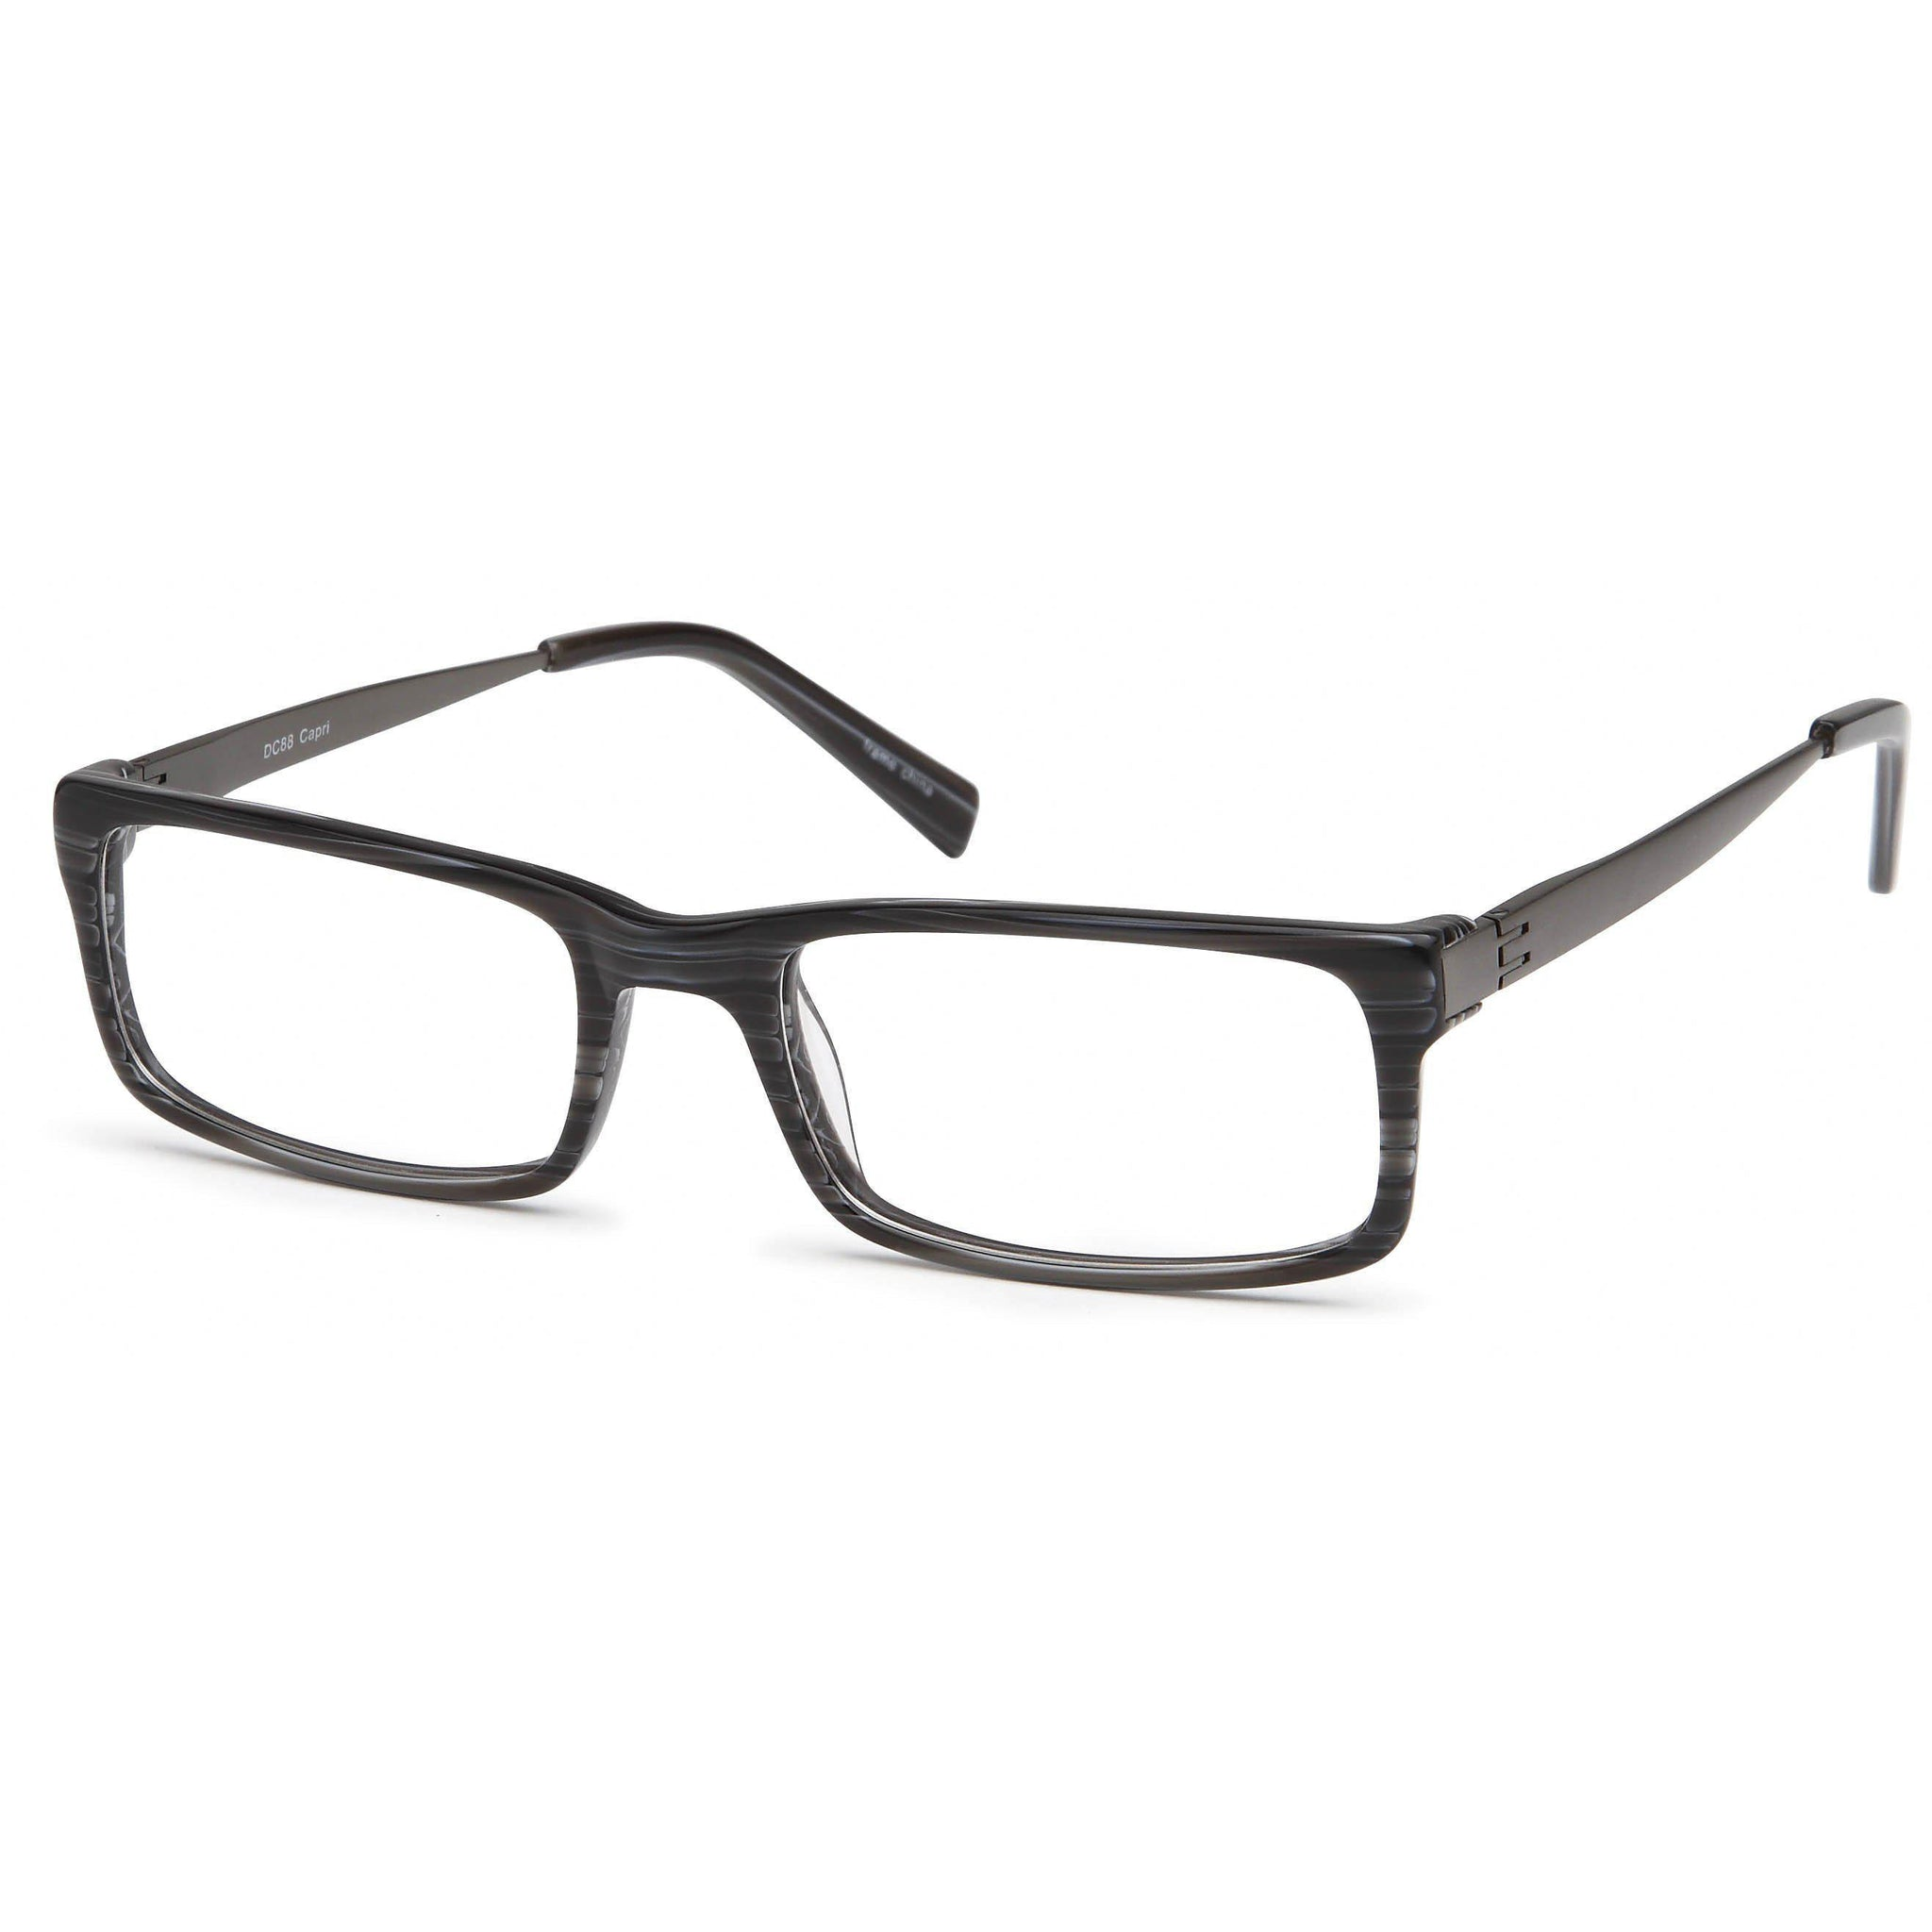 Di Caprio Prescription Glasses DC 88 Eyeglasses Frame - timetoshade